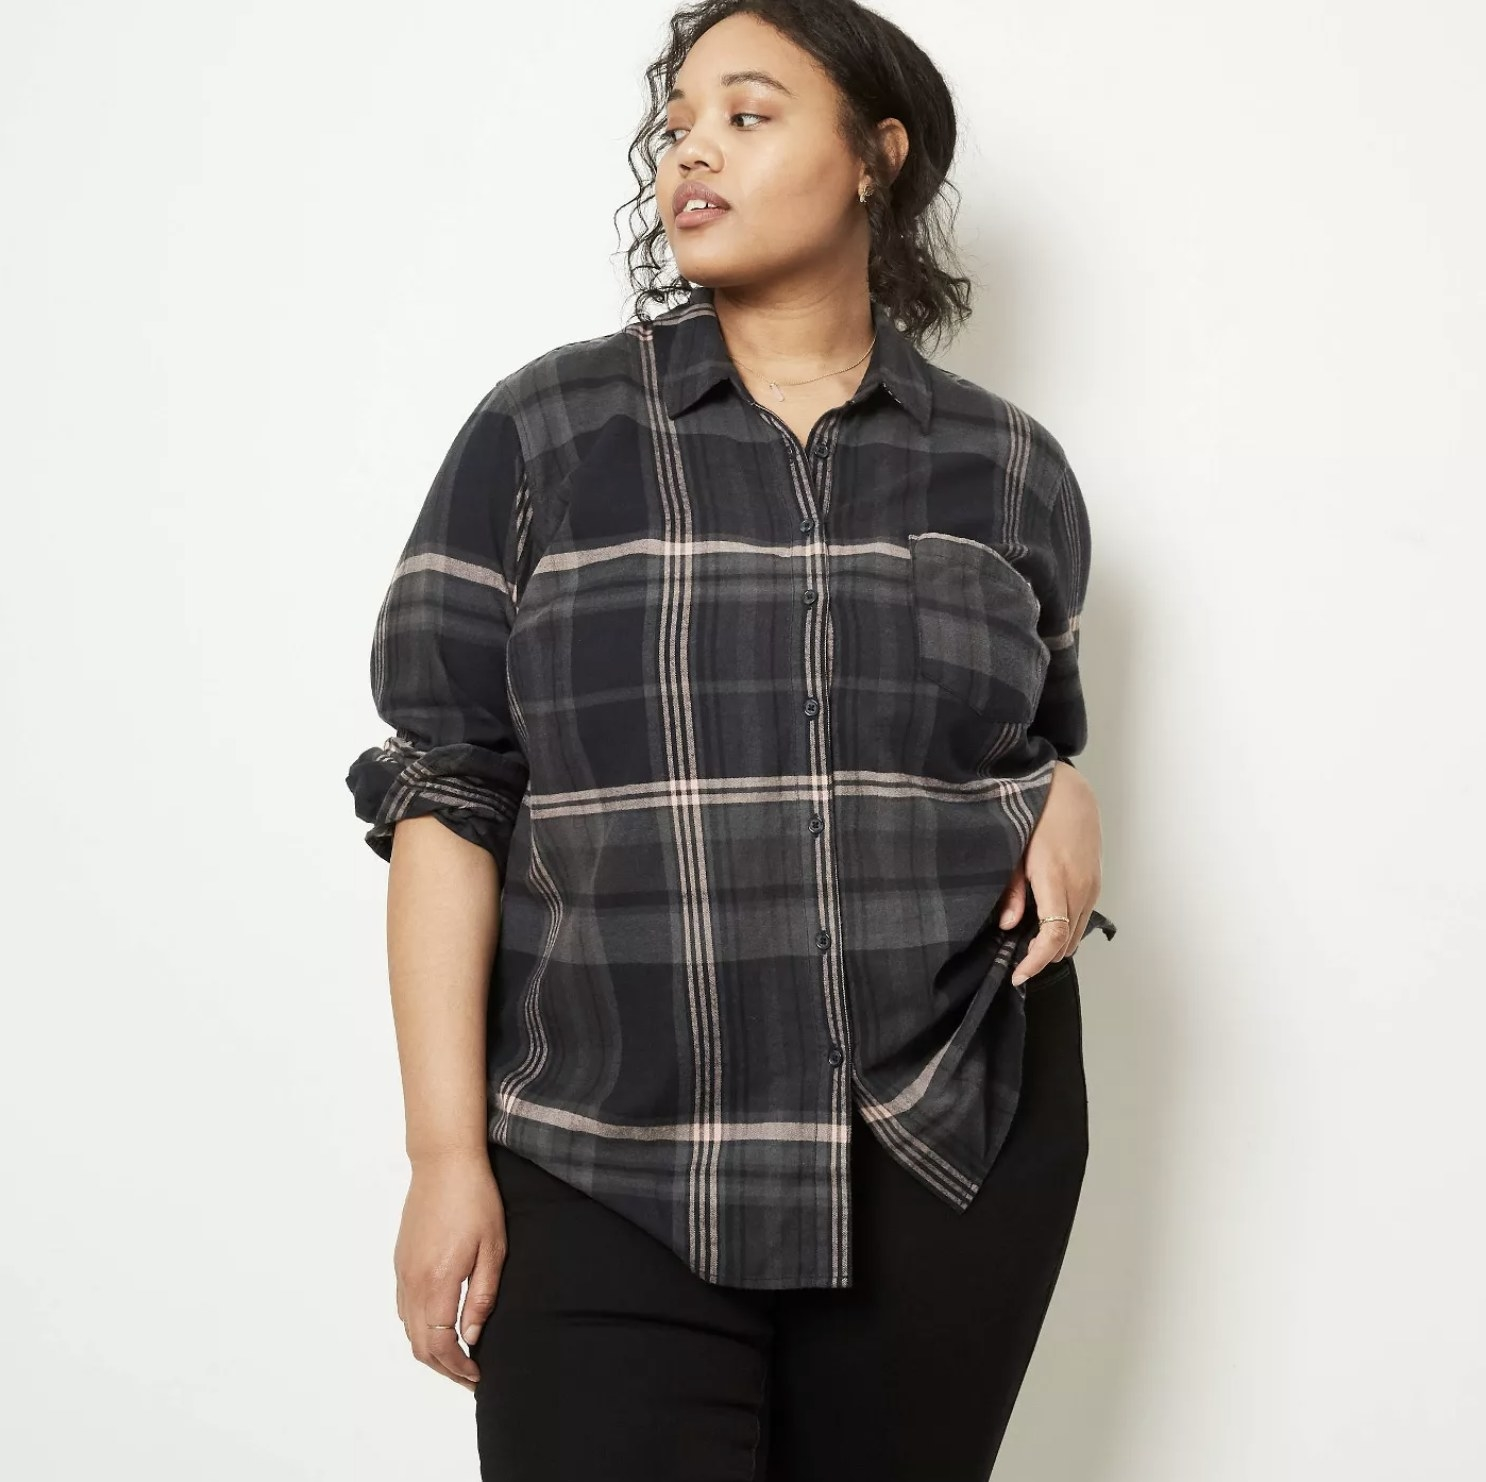 Model is wearing a black plaid button-down long sleeve shirt and black pants